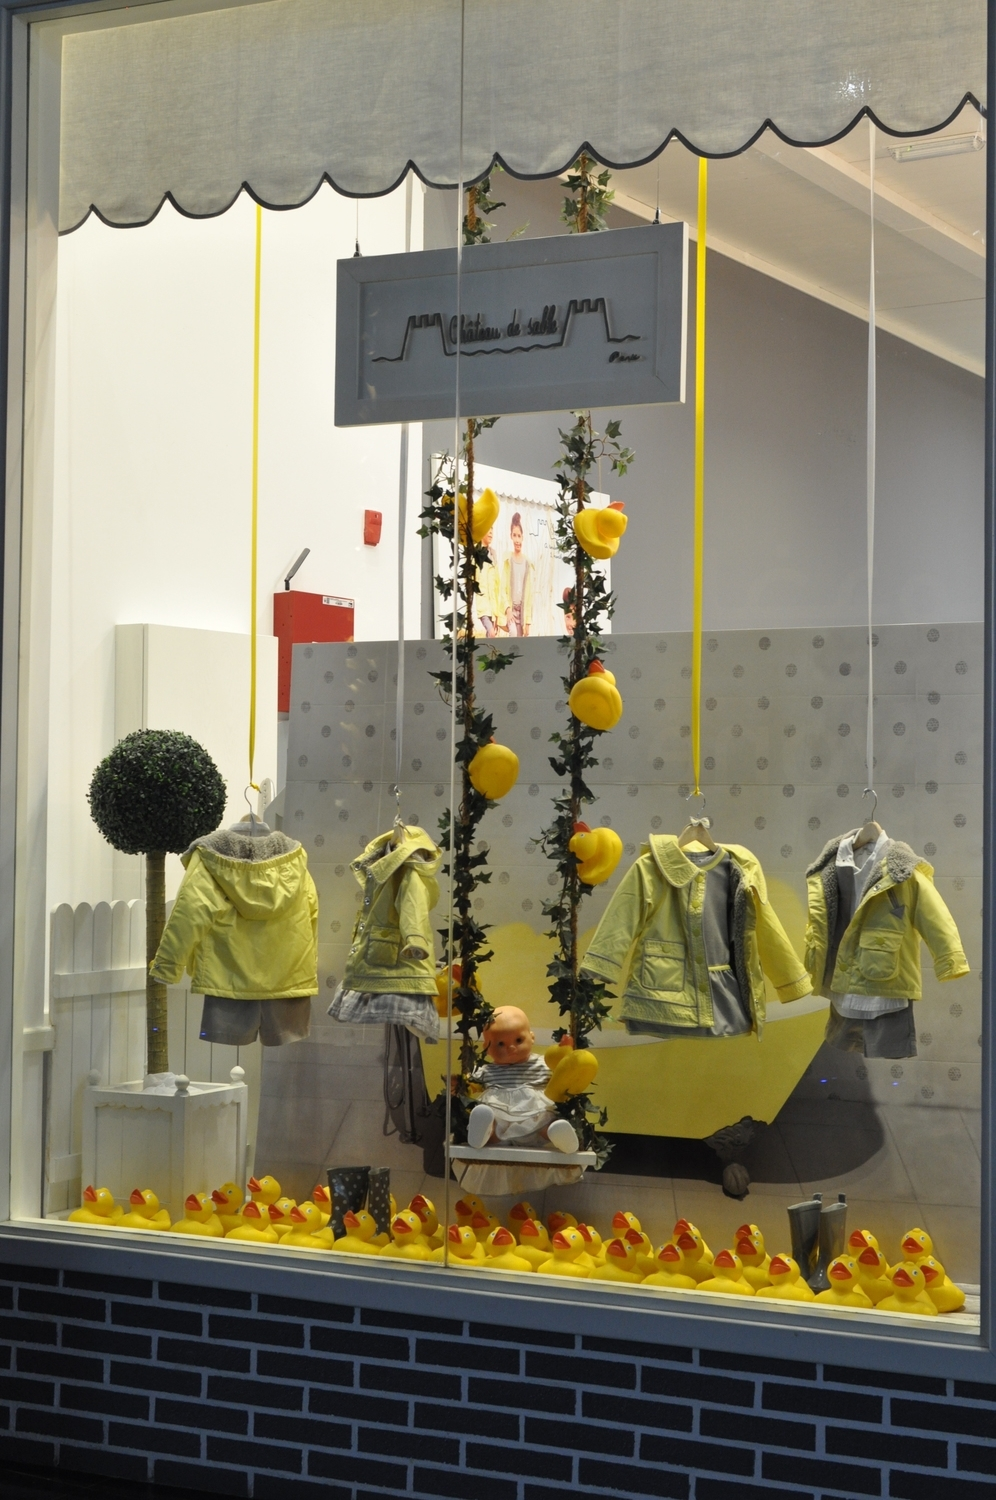 CHATEAU DE SABLE    A yellow rubber duck theme depicting a bathroom scene with raindrops was bright and eye-catching.   The colour combination of yellow and grey allowed for a gender-neutral display of their Autumn/Winter raincoats and gumboots.